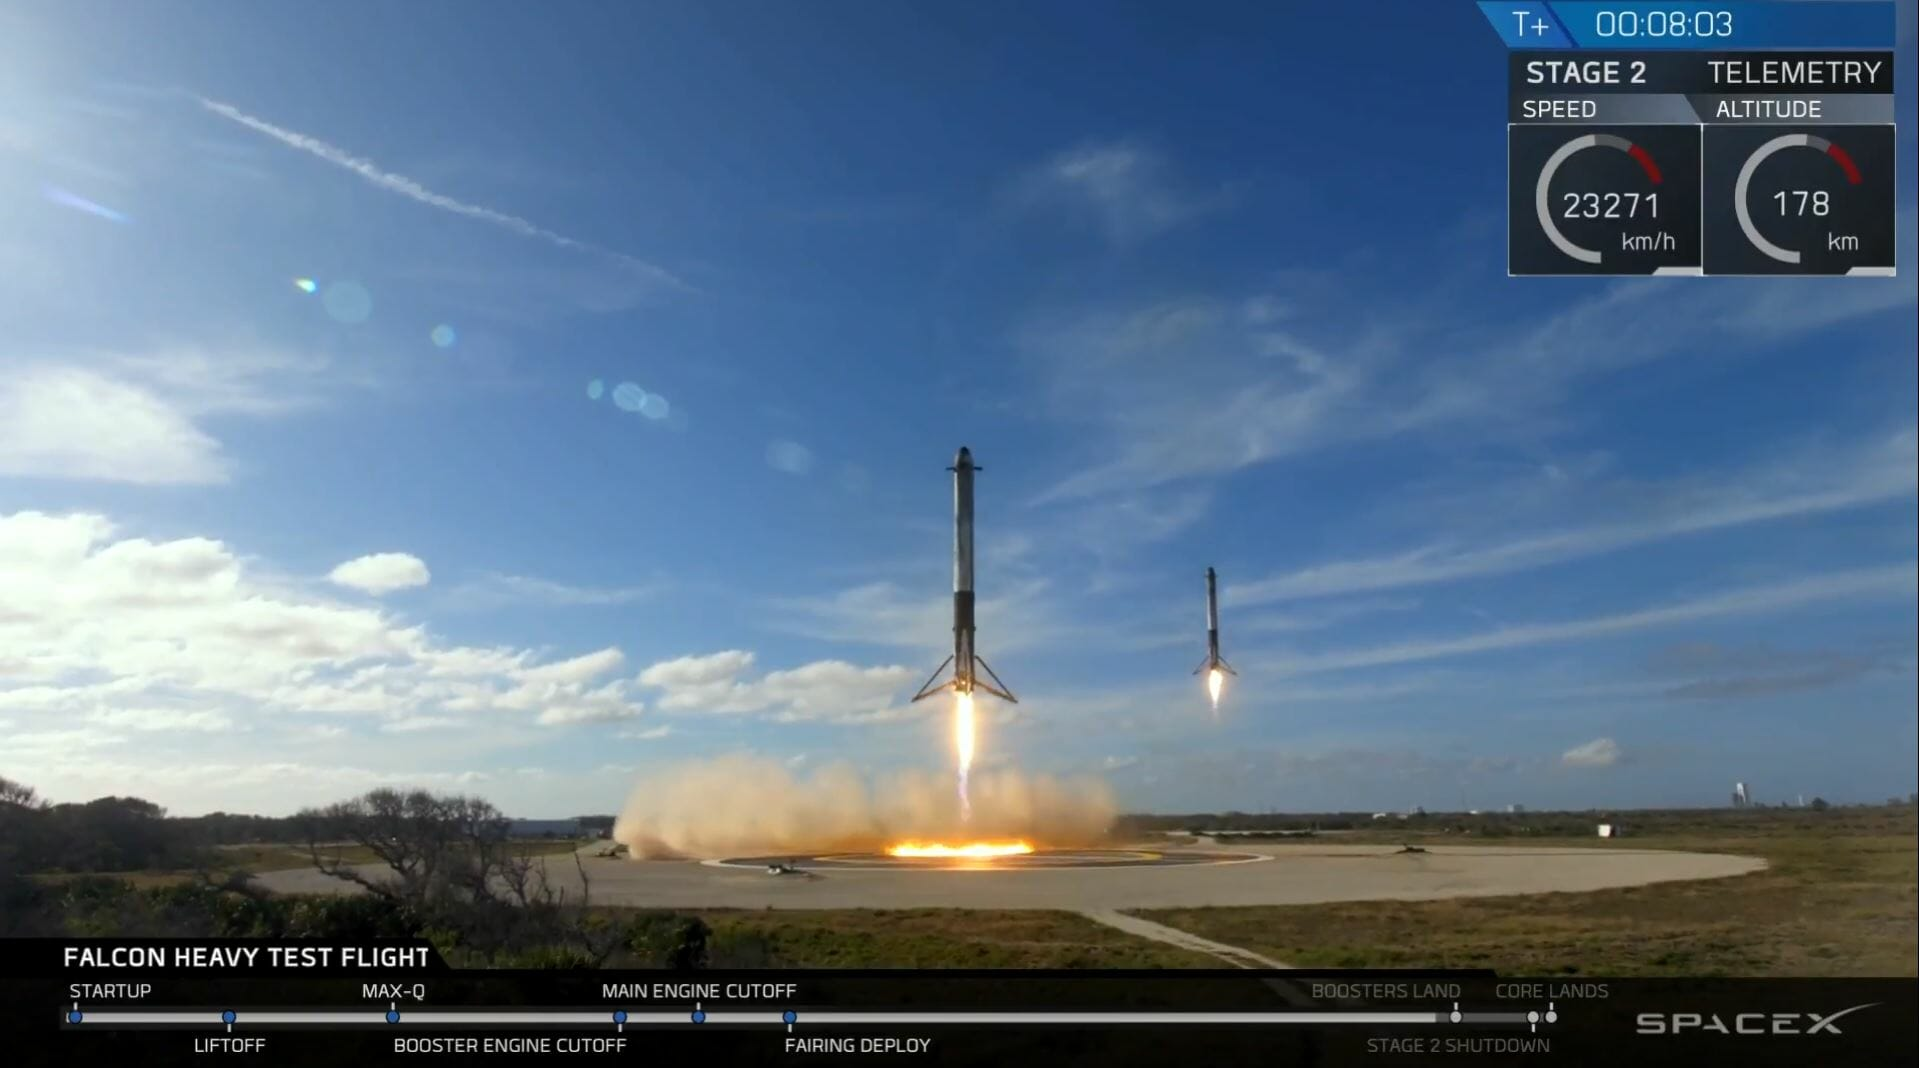 spacex falcon heavy launch side booster